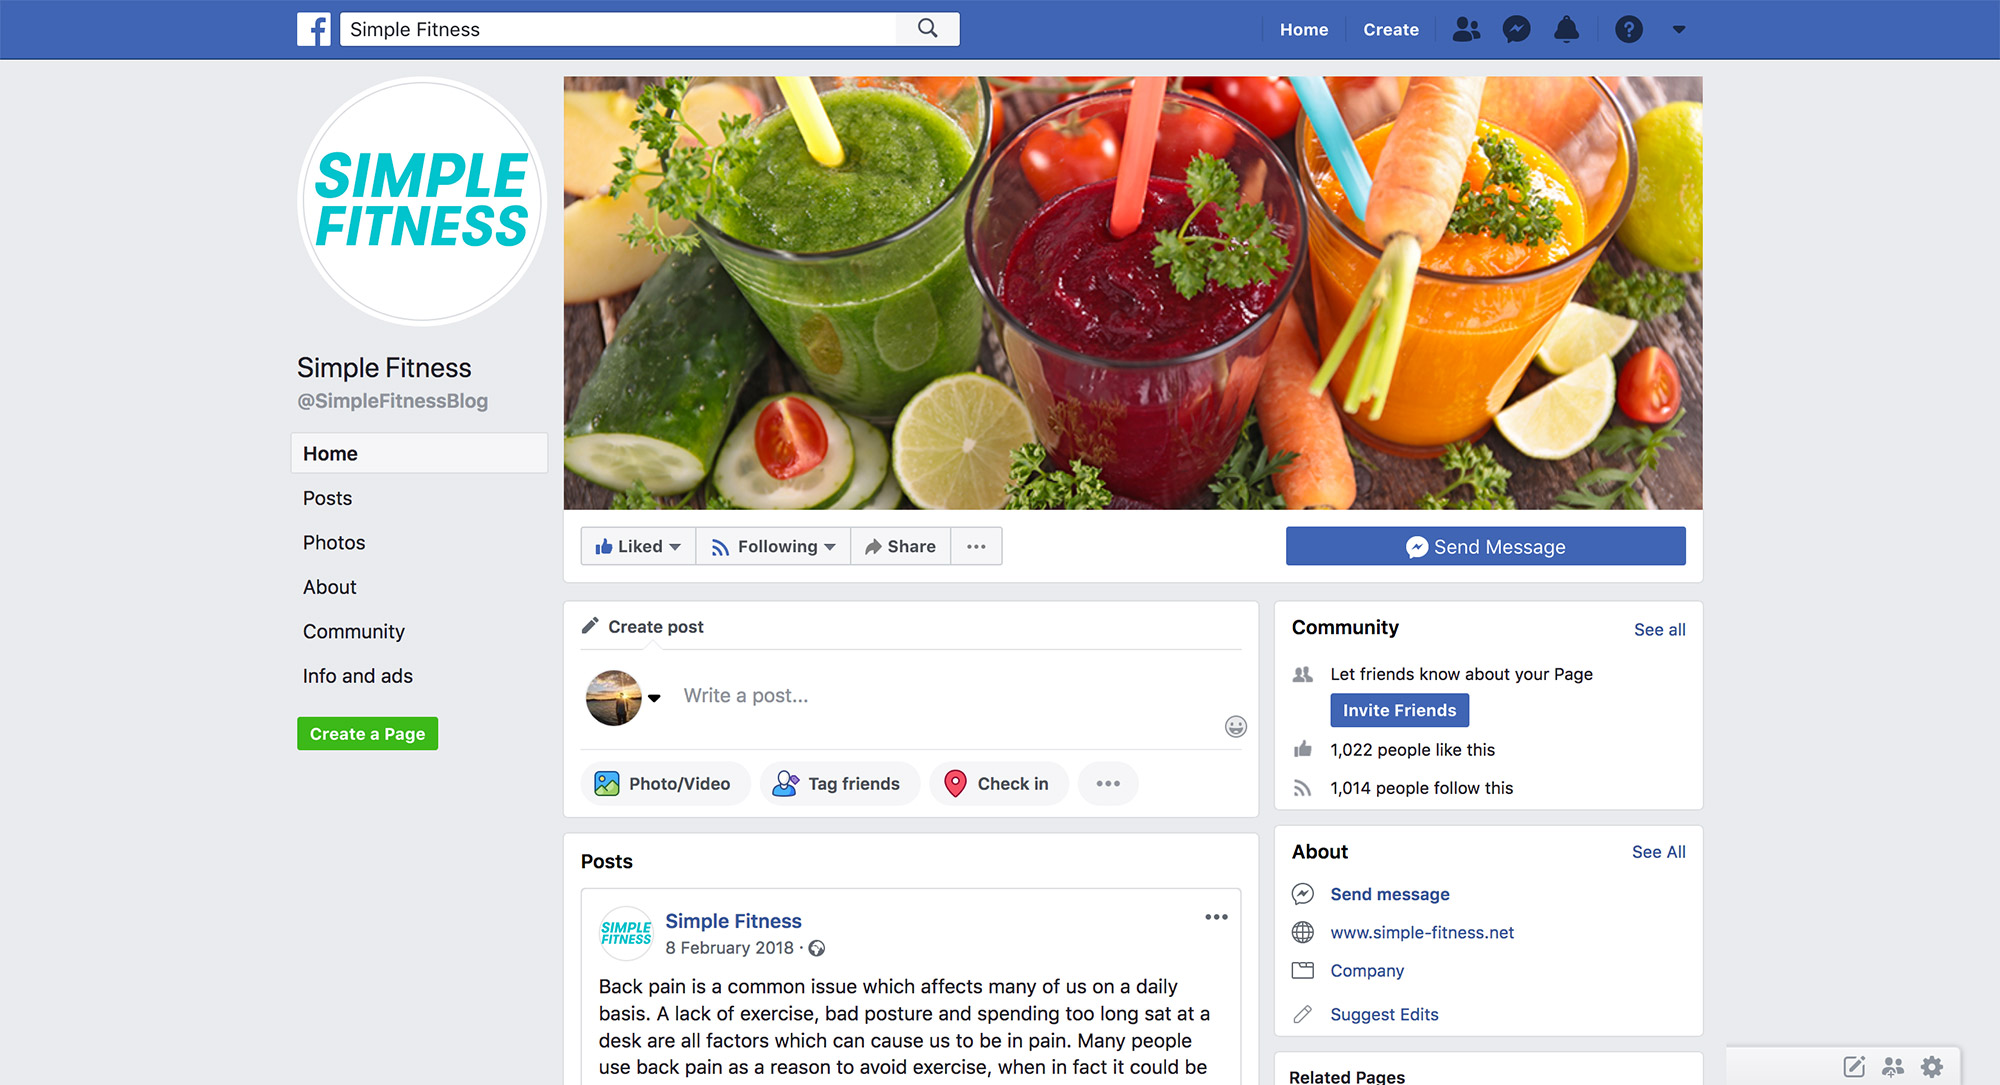 Simple Fitness Facebook Page